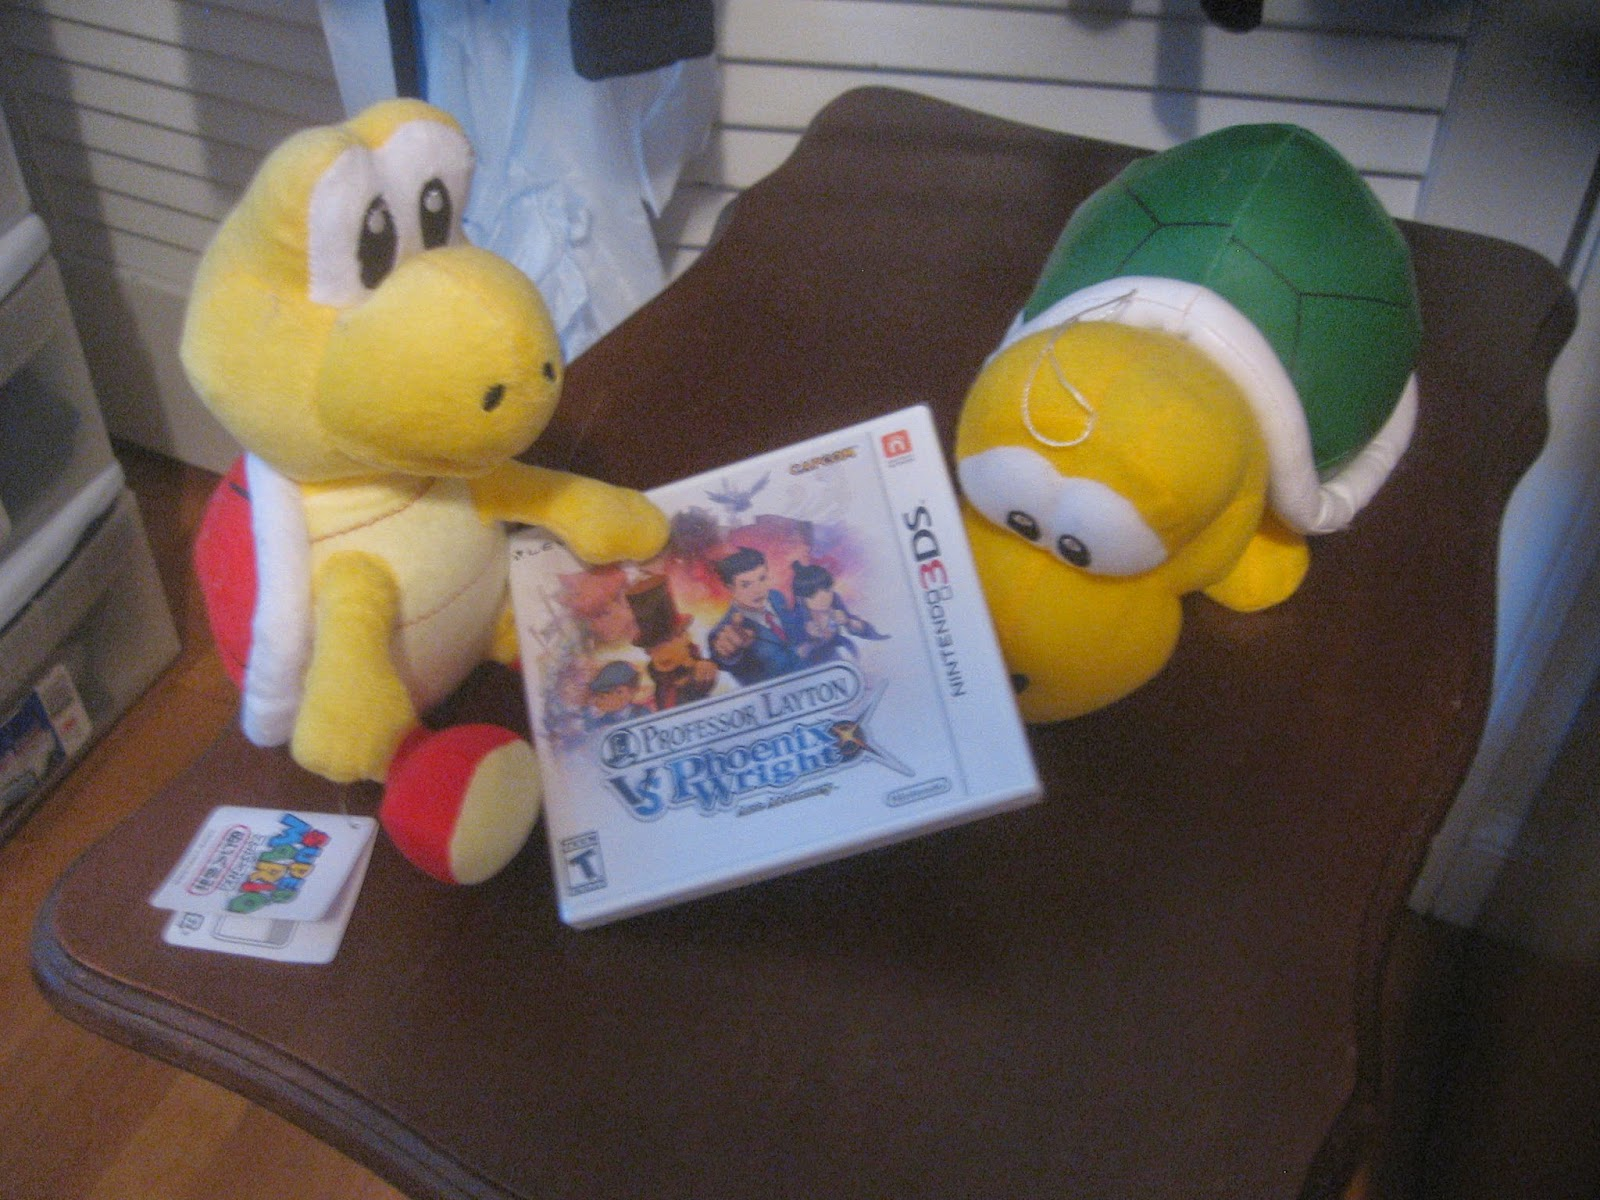 Koopa Troopa plush presenting Professor Layton Vs. Phoenix Wright: Ace Attorney.